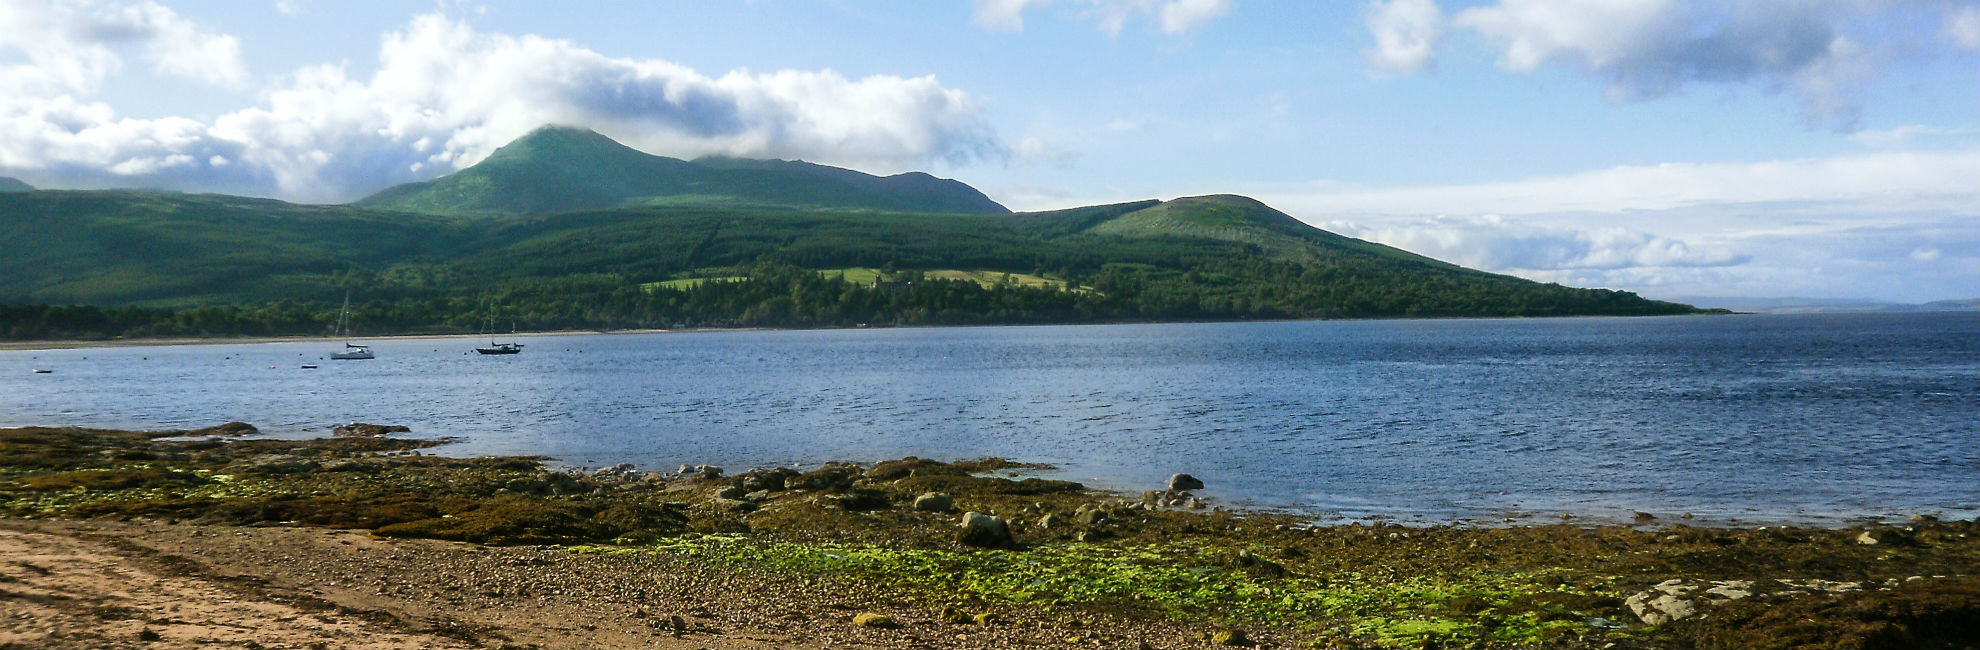 A peaceful bay surrounded by green mountains and hillside on the Isle of Arran in Scotland